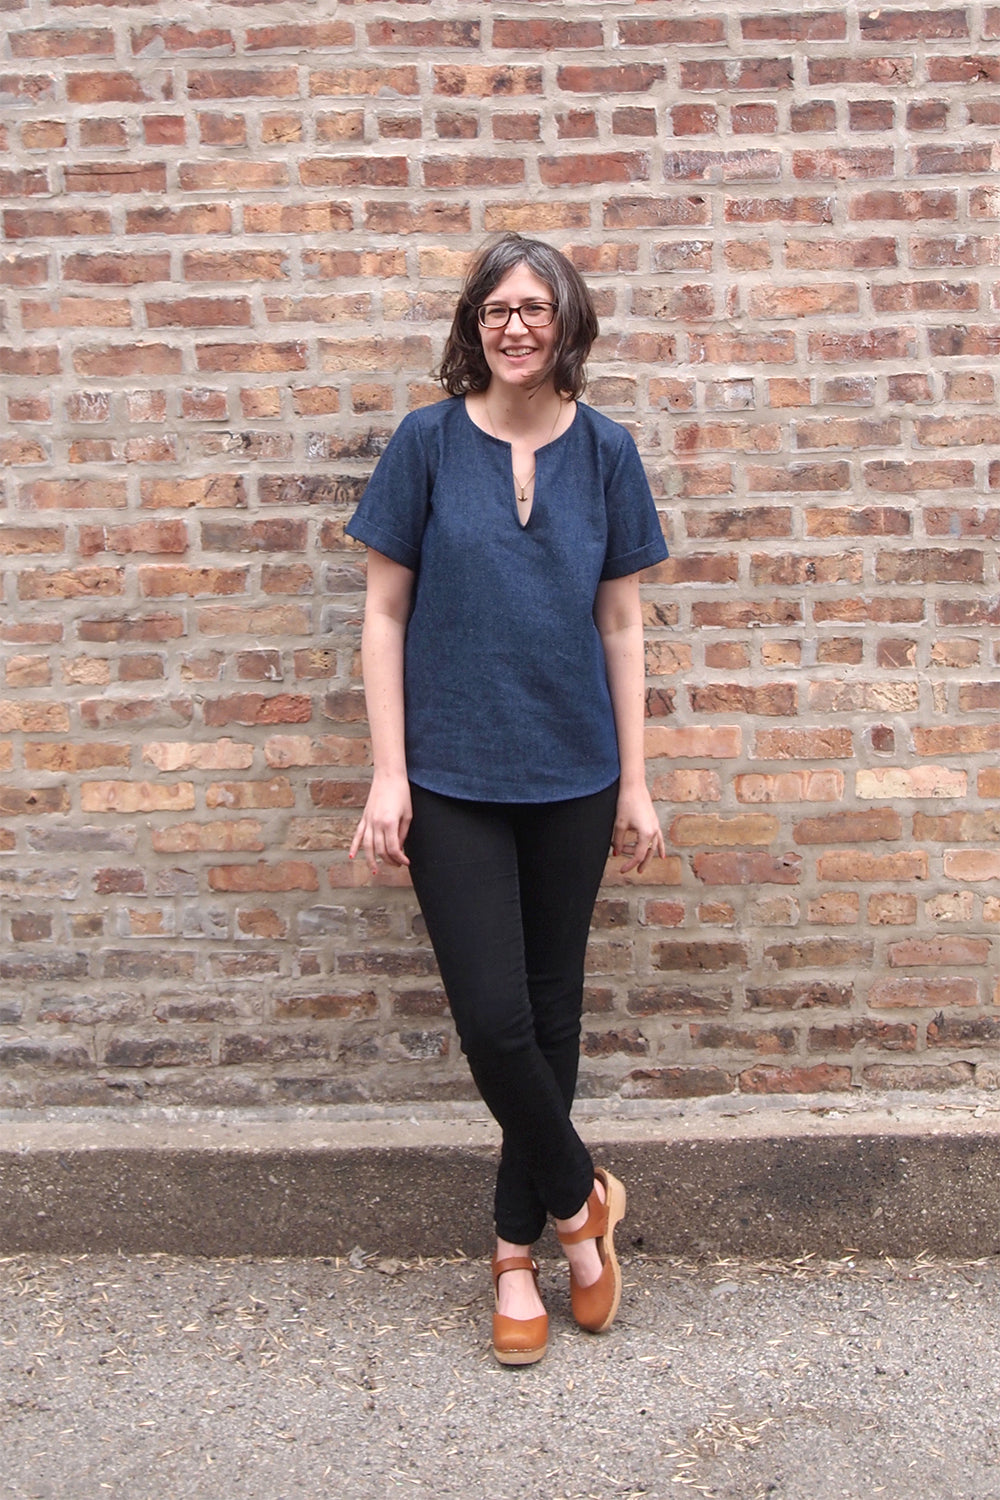 Grainline Studio | Madewell Scout Variation